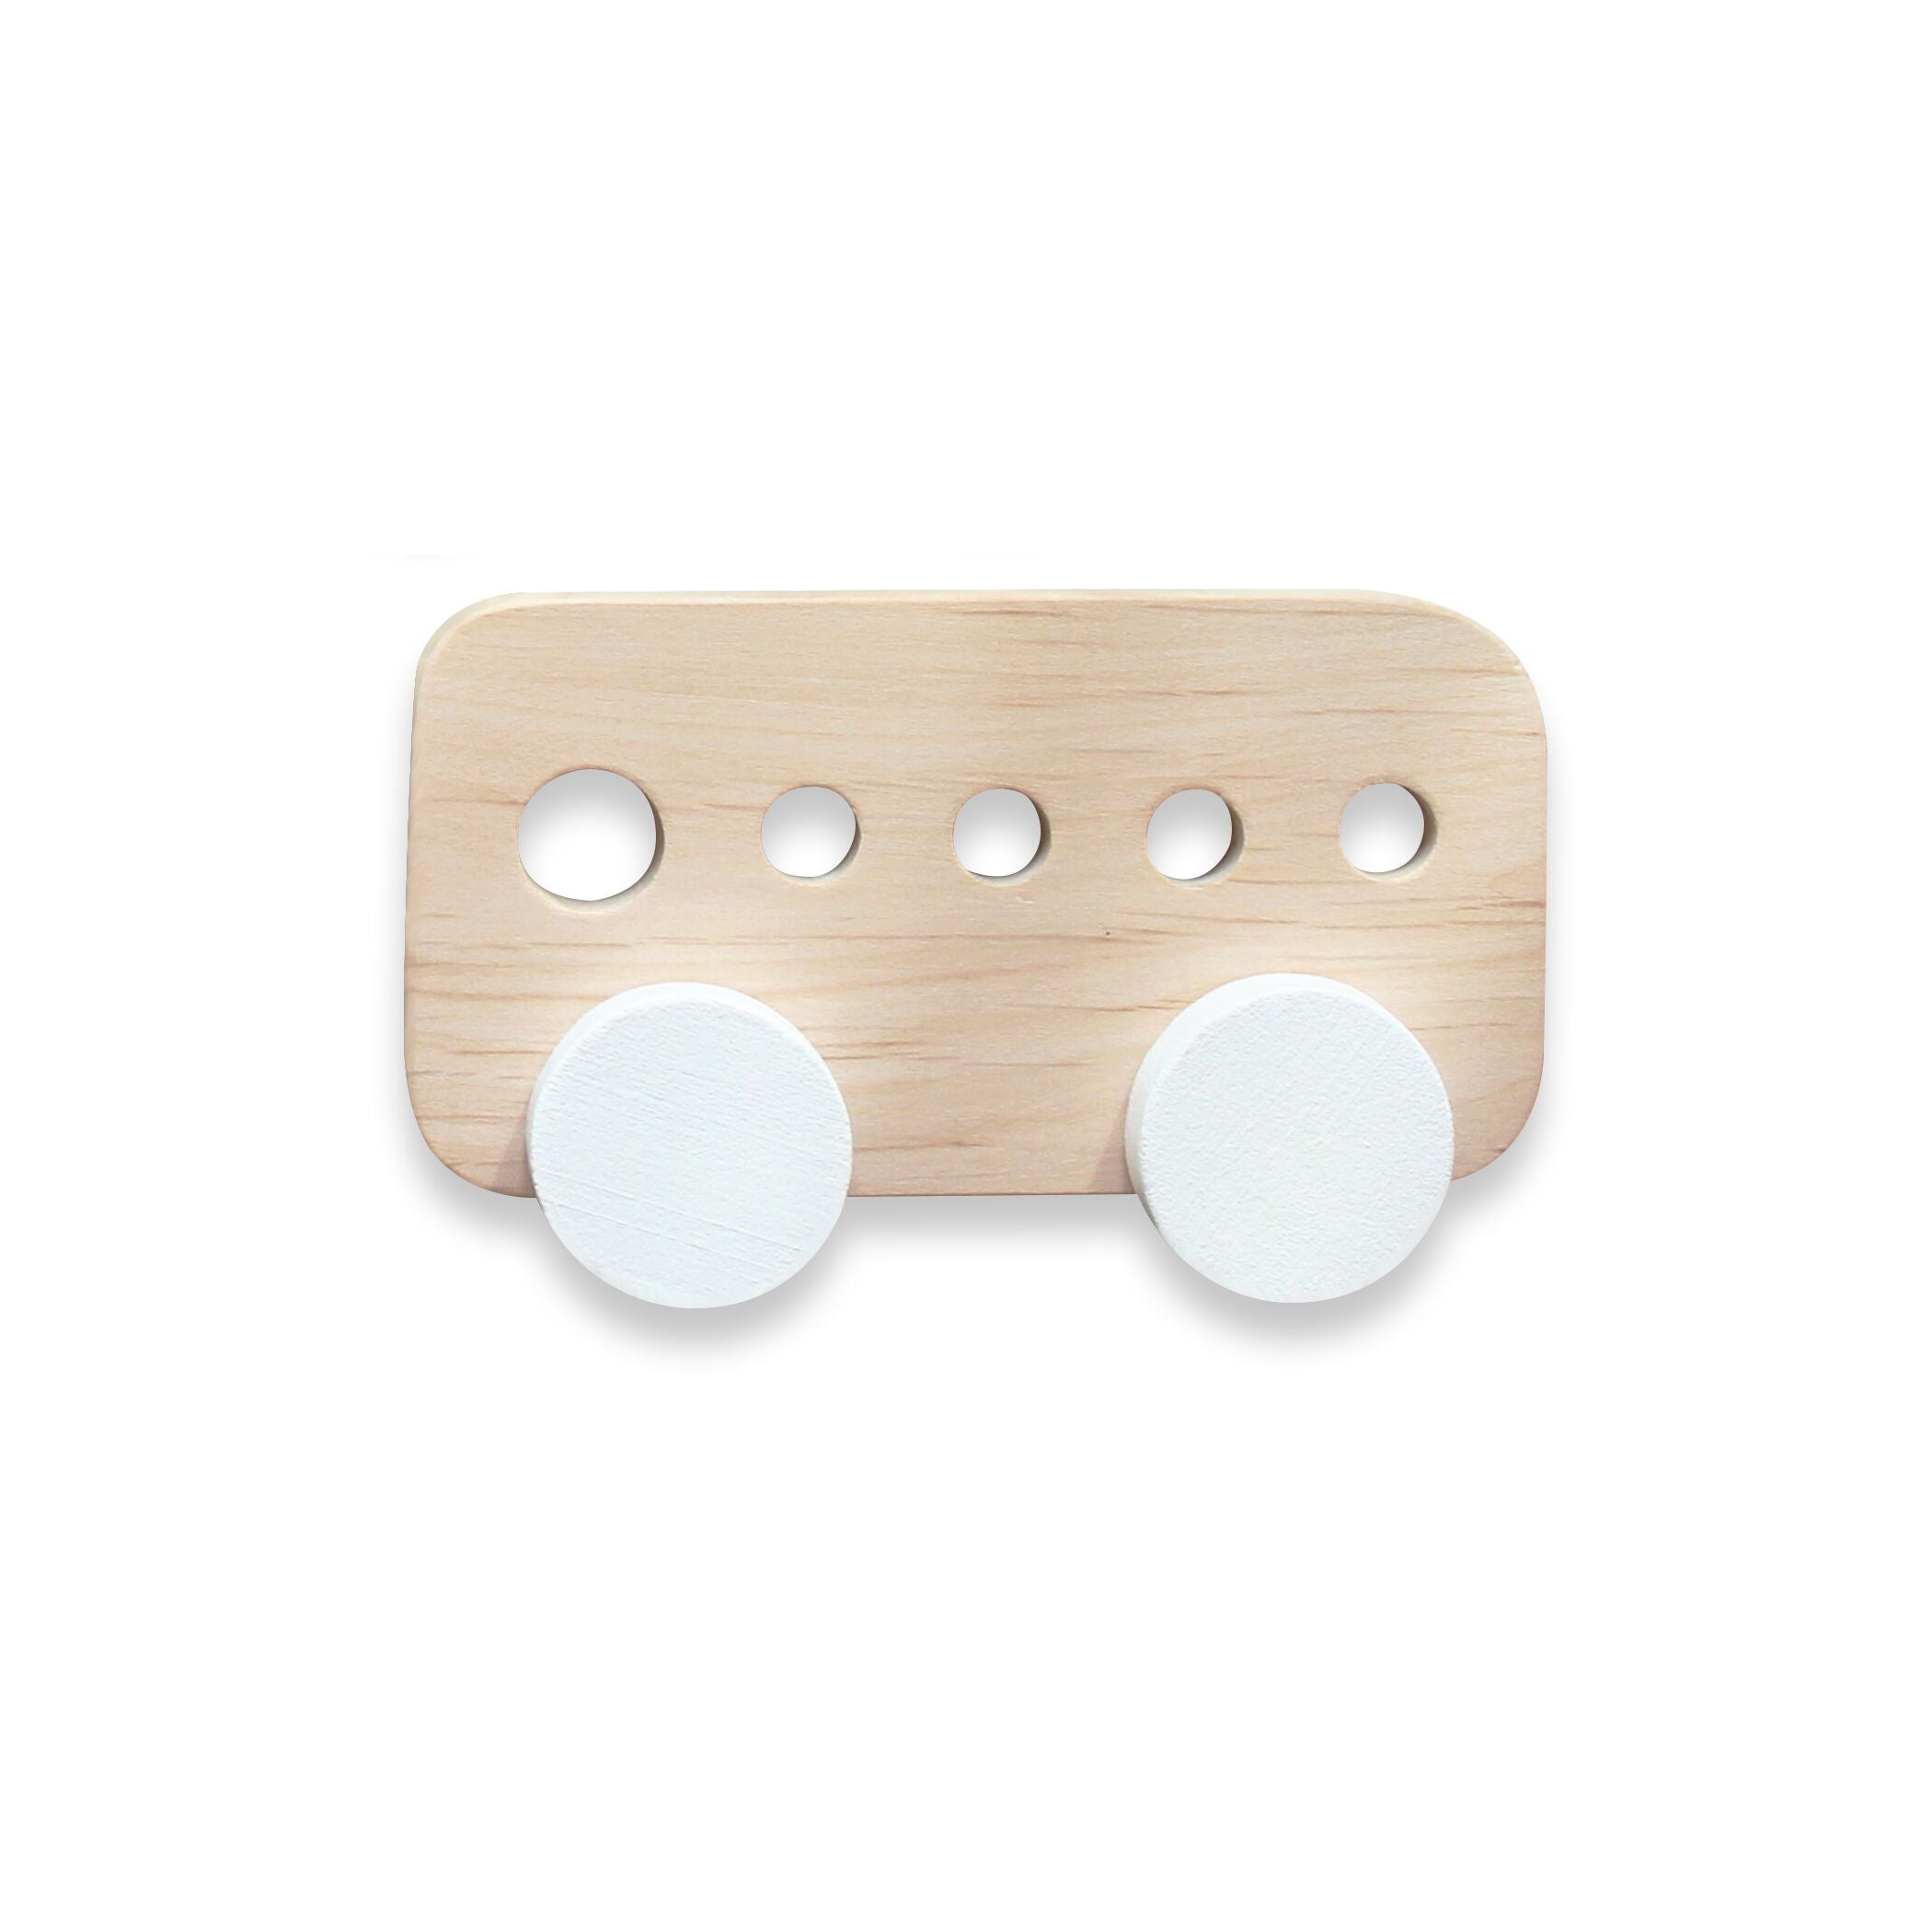 Wooden bus toy at Bonjour Baby Baskets, best baby gifts